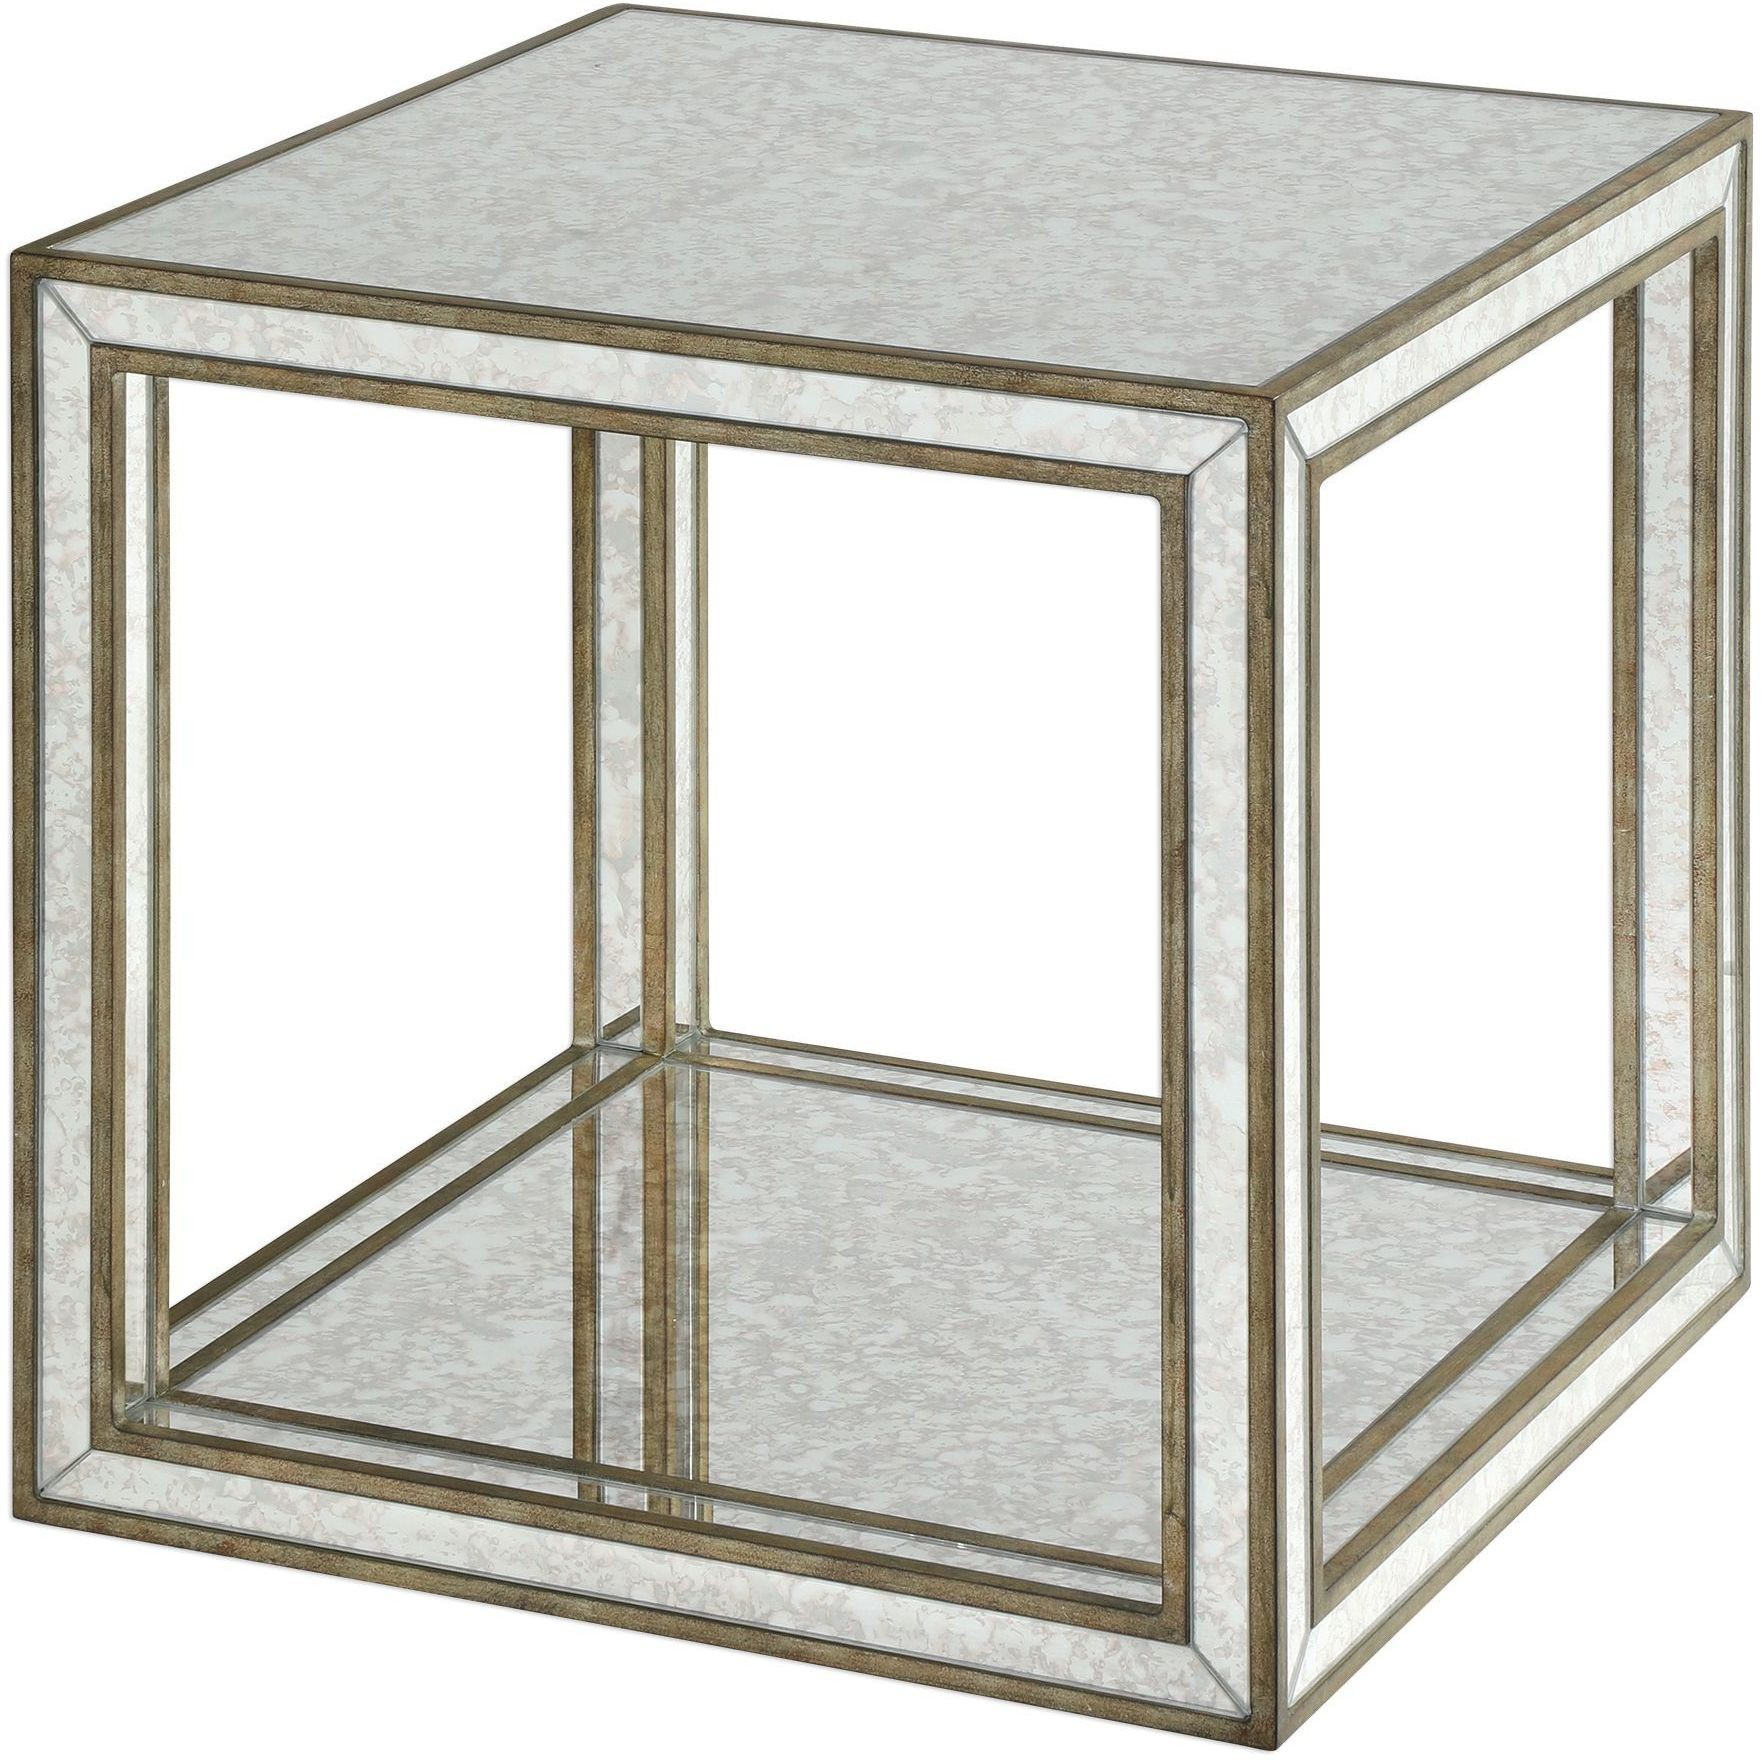 julie mirrored accent table from uttermost coleman furniture laton inside west elm tripod floor lamp meyda tiffany lamps silver trunk coffee cloth tables side with umbrella hole